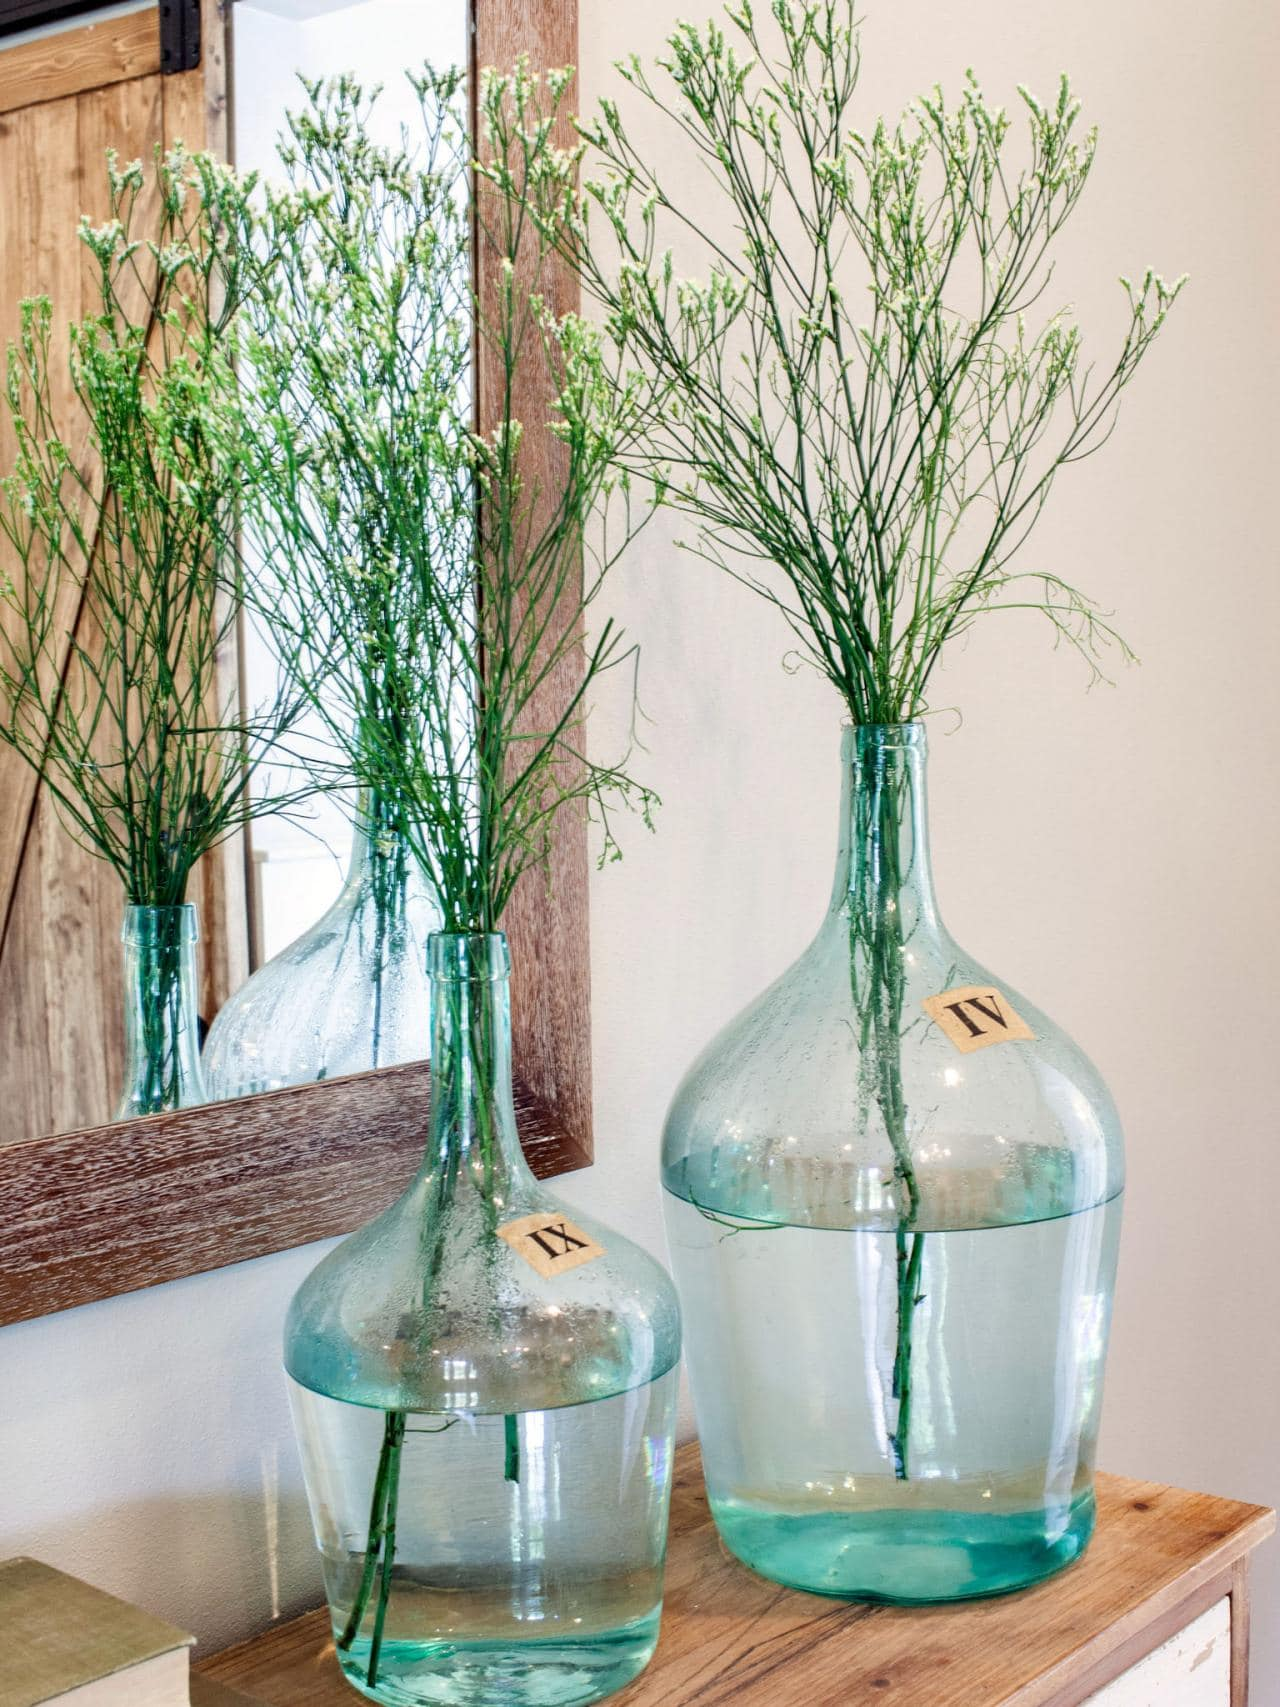 antique-demijohns-reproductions green bottles branches display